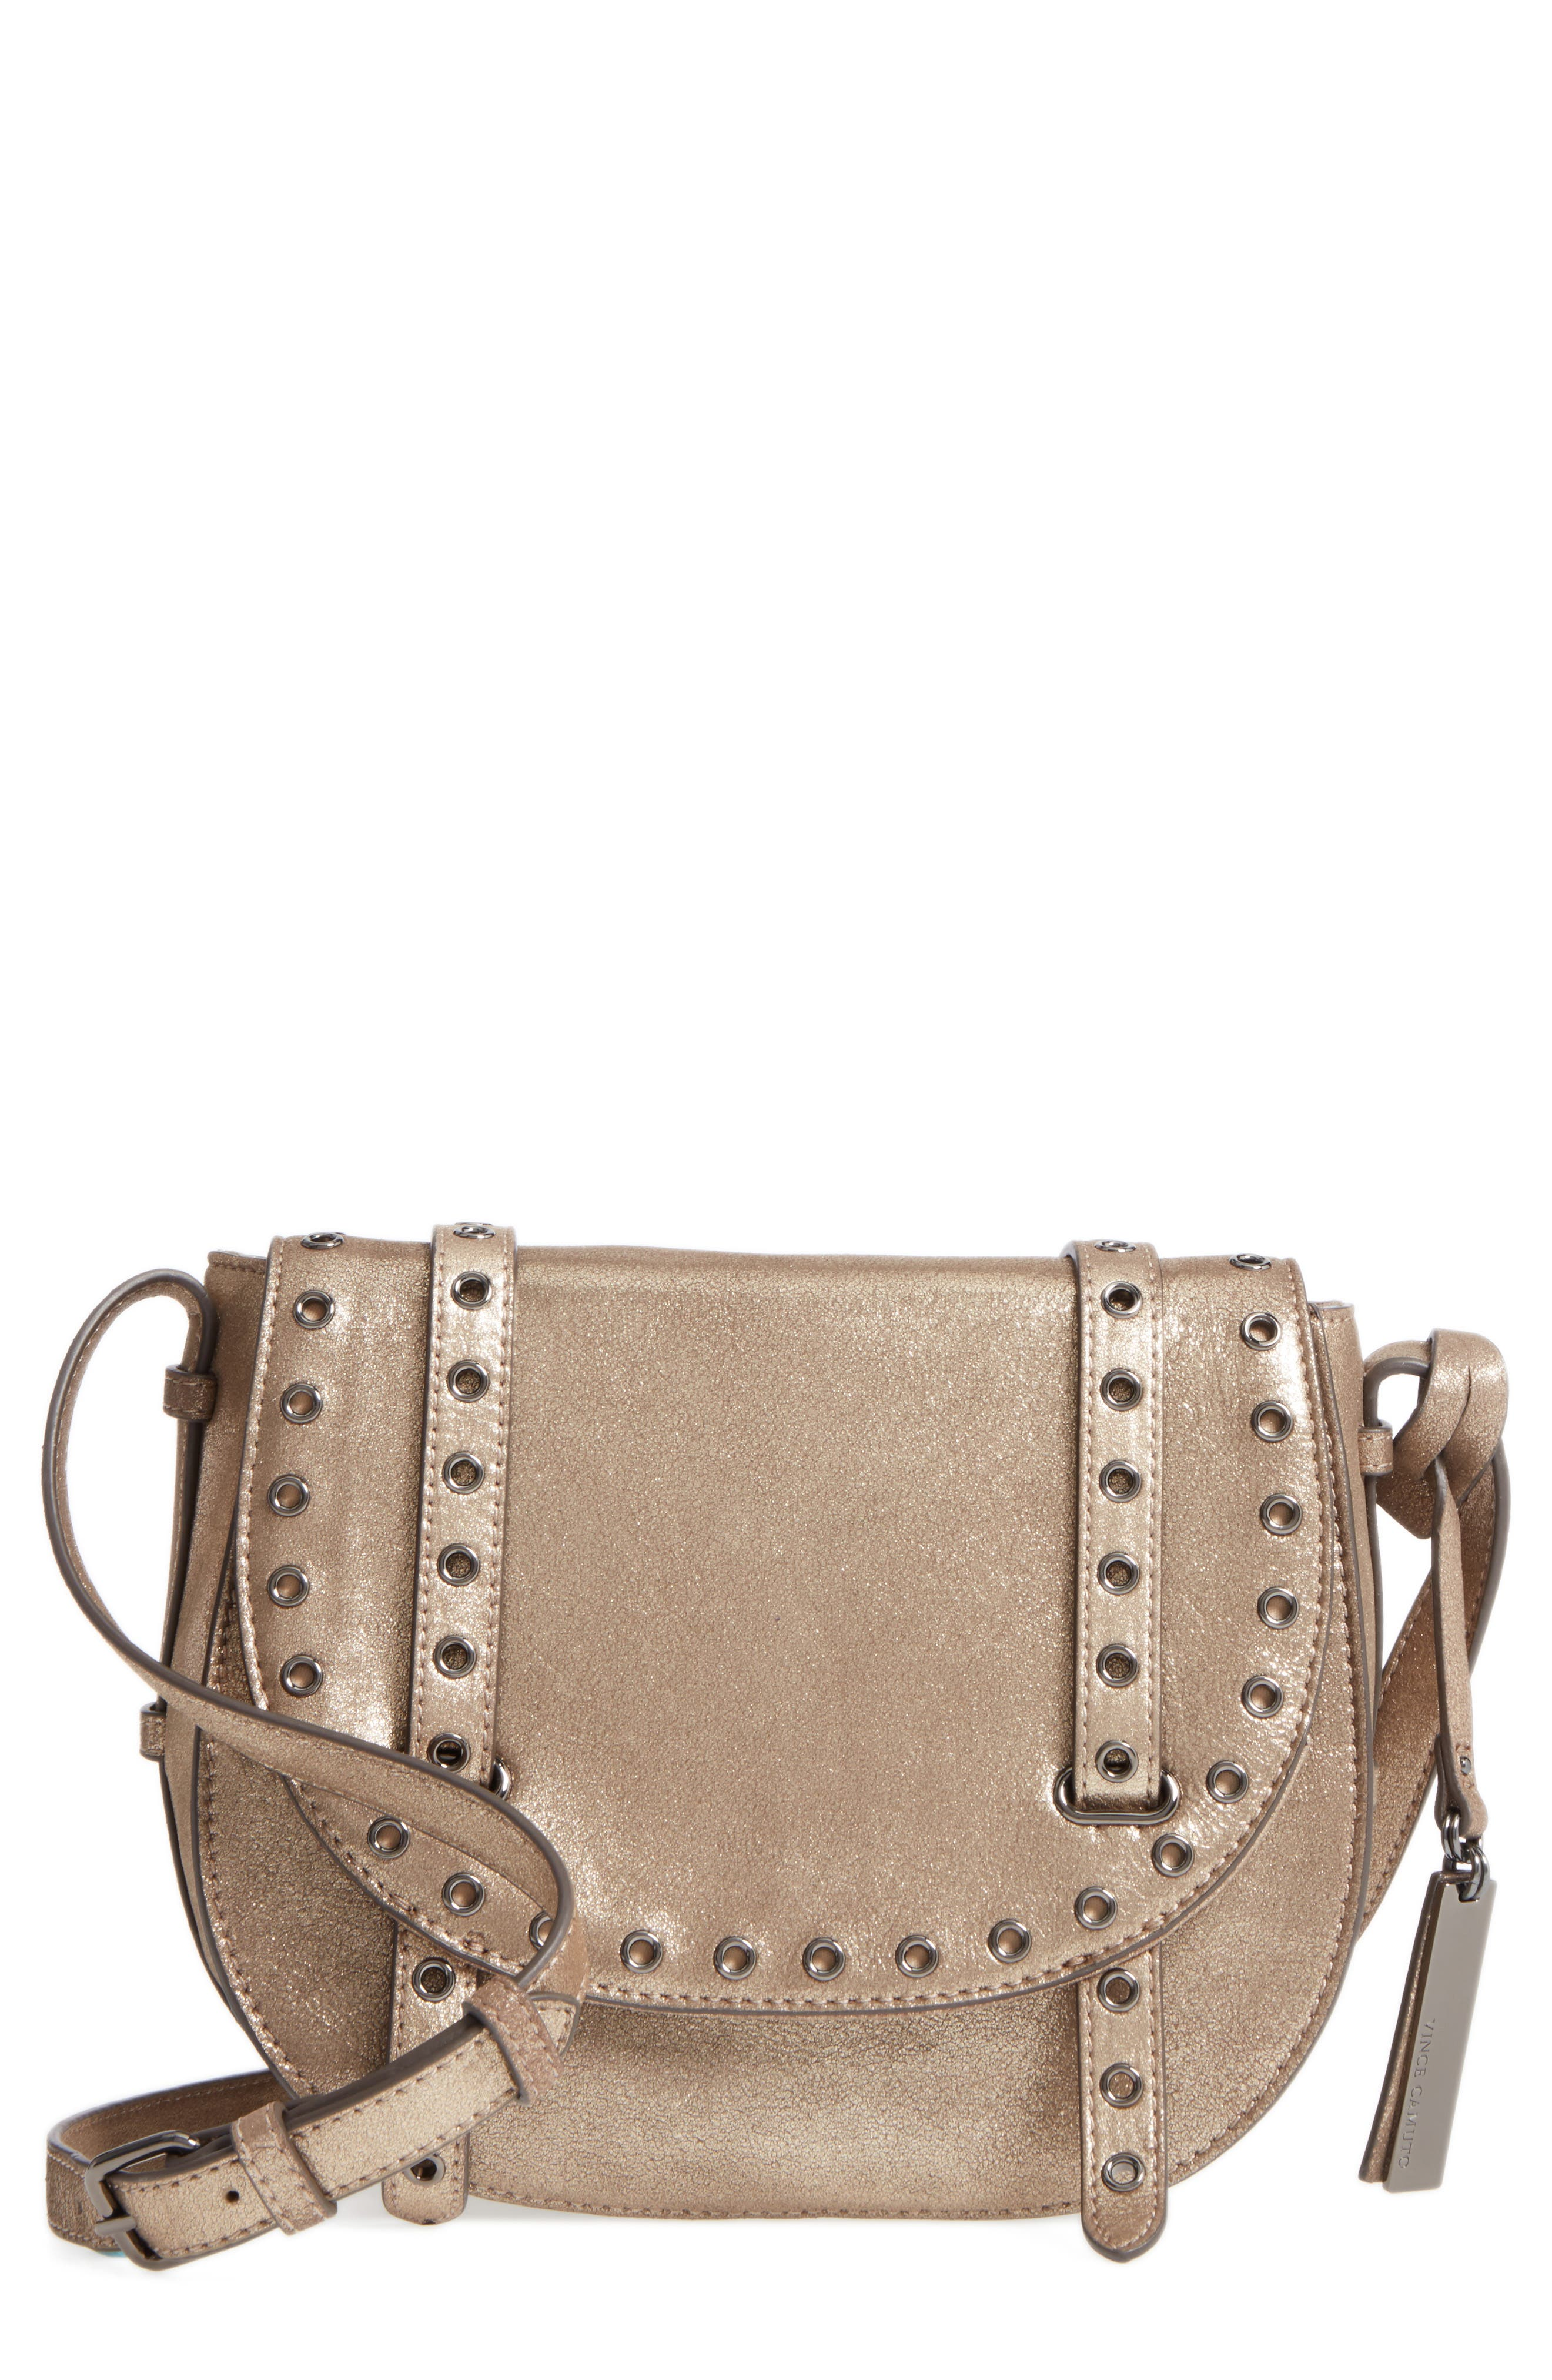 Areli Suede & Leather Crossbody Saddle Bag,                         Main,                         color, 710